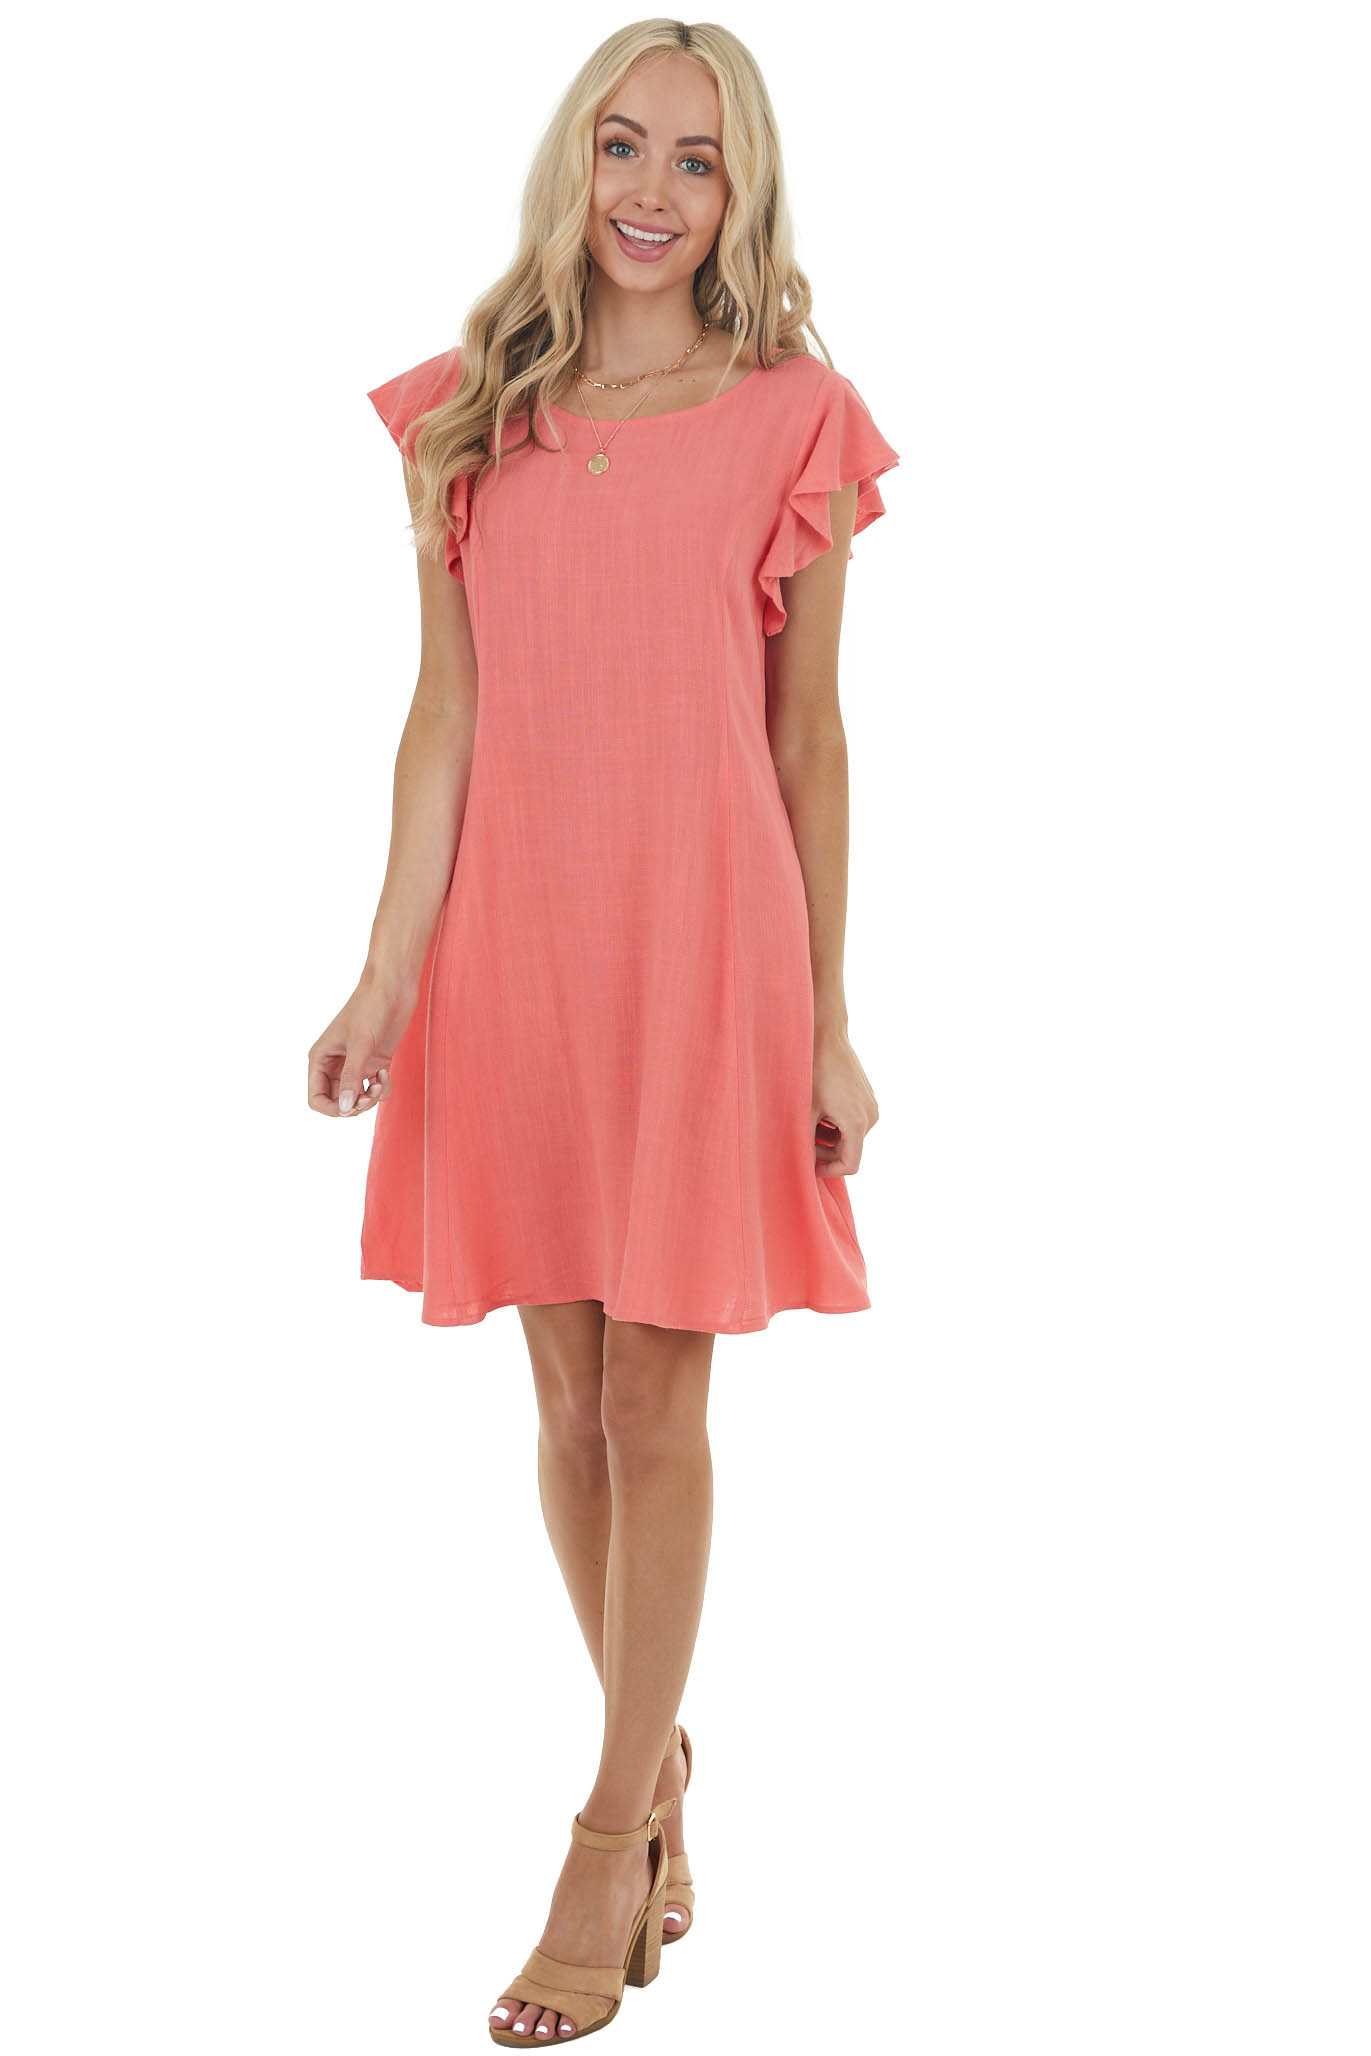 Coral Shift Short Linen Dress with Short Ruffle Sleeves